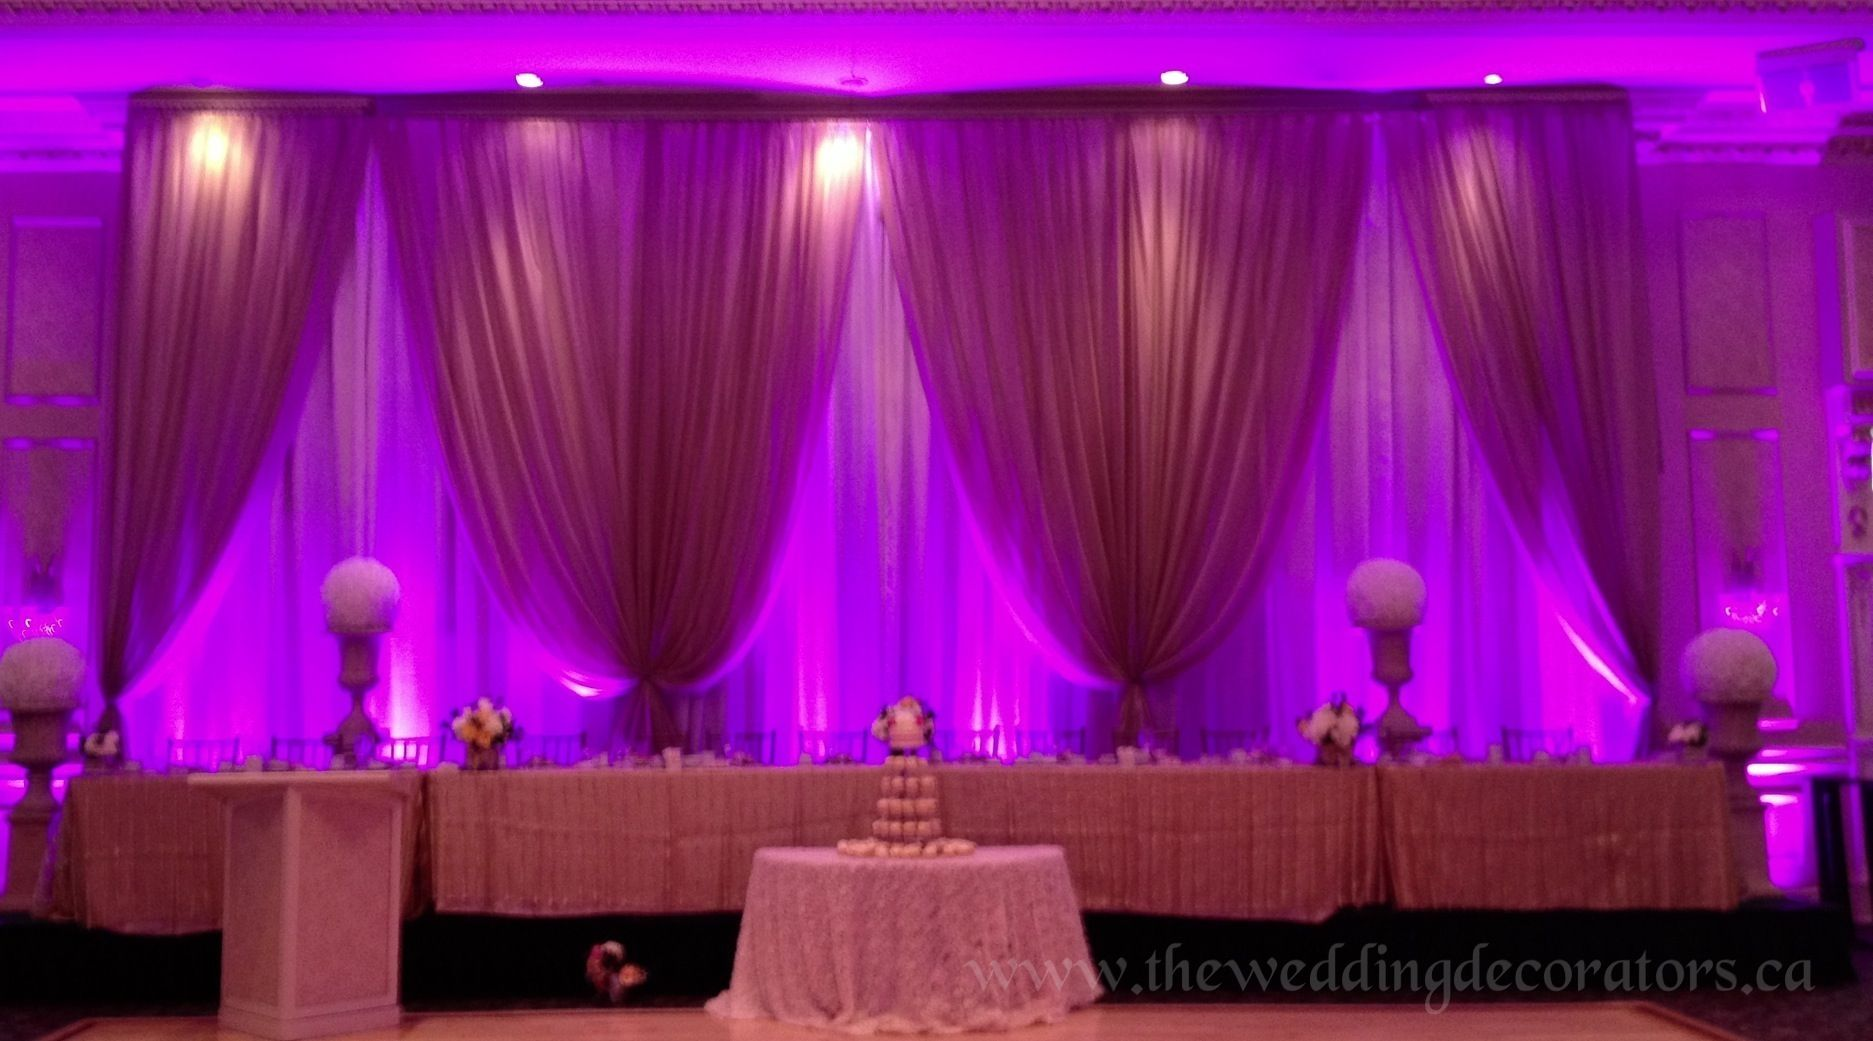 Debut Stage Backdrop Wedding backdro...